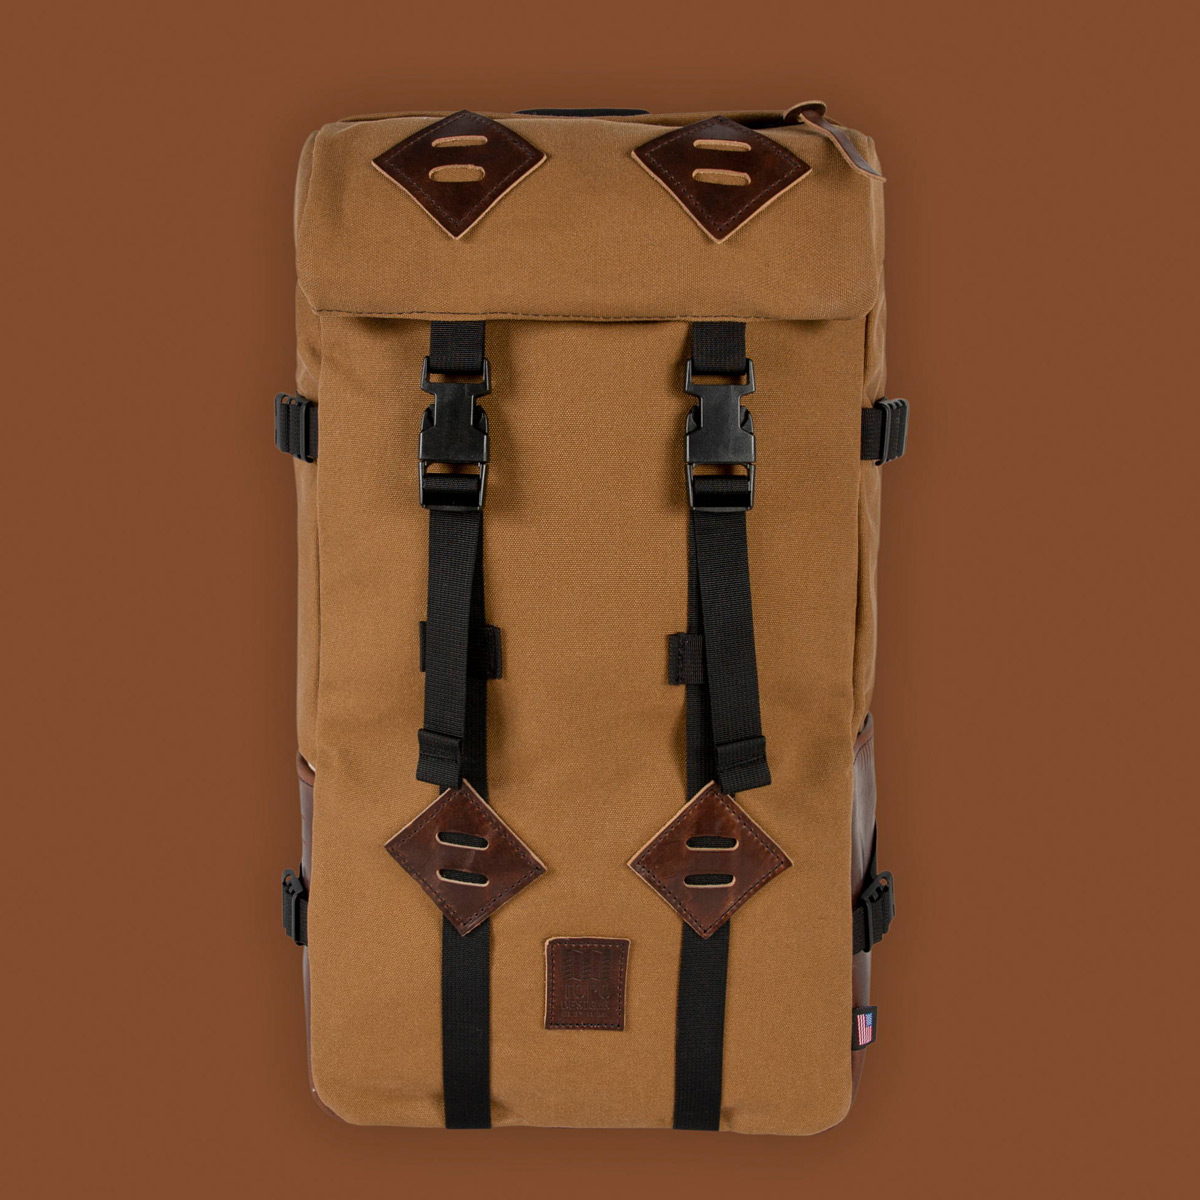 Topo Designs Klettersack Heritage Dark Khaki Canvas/Dark Brown Leather Lifestyle, classic backpack for men and women